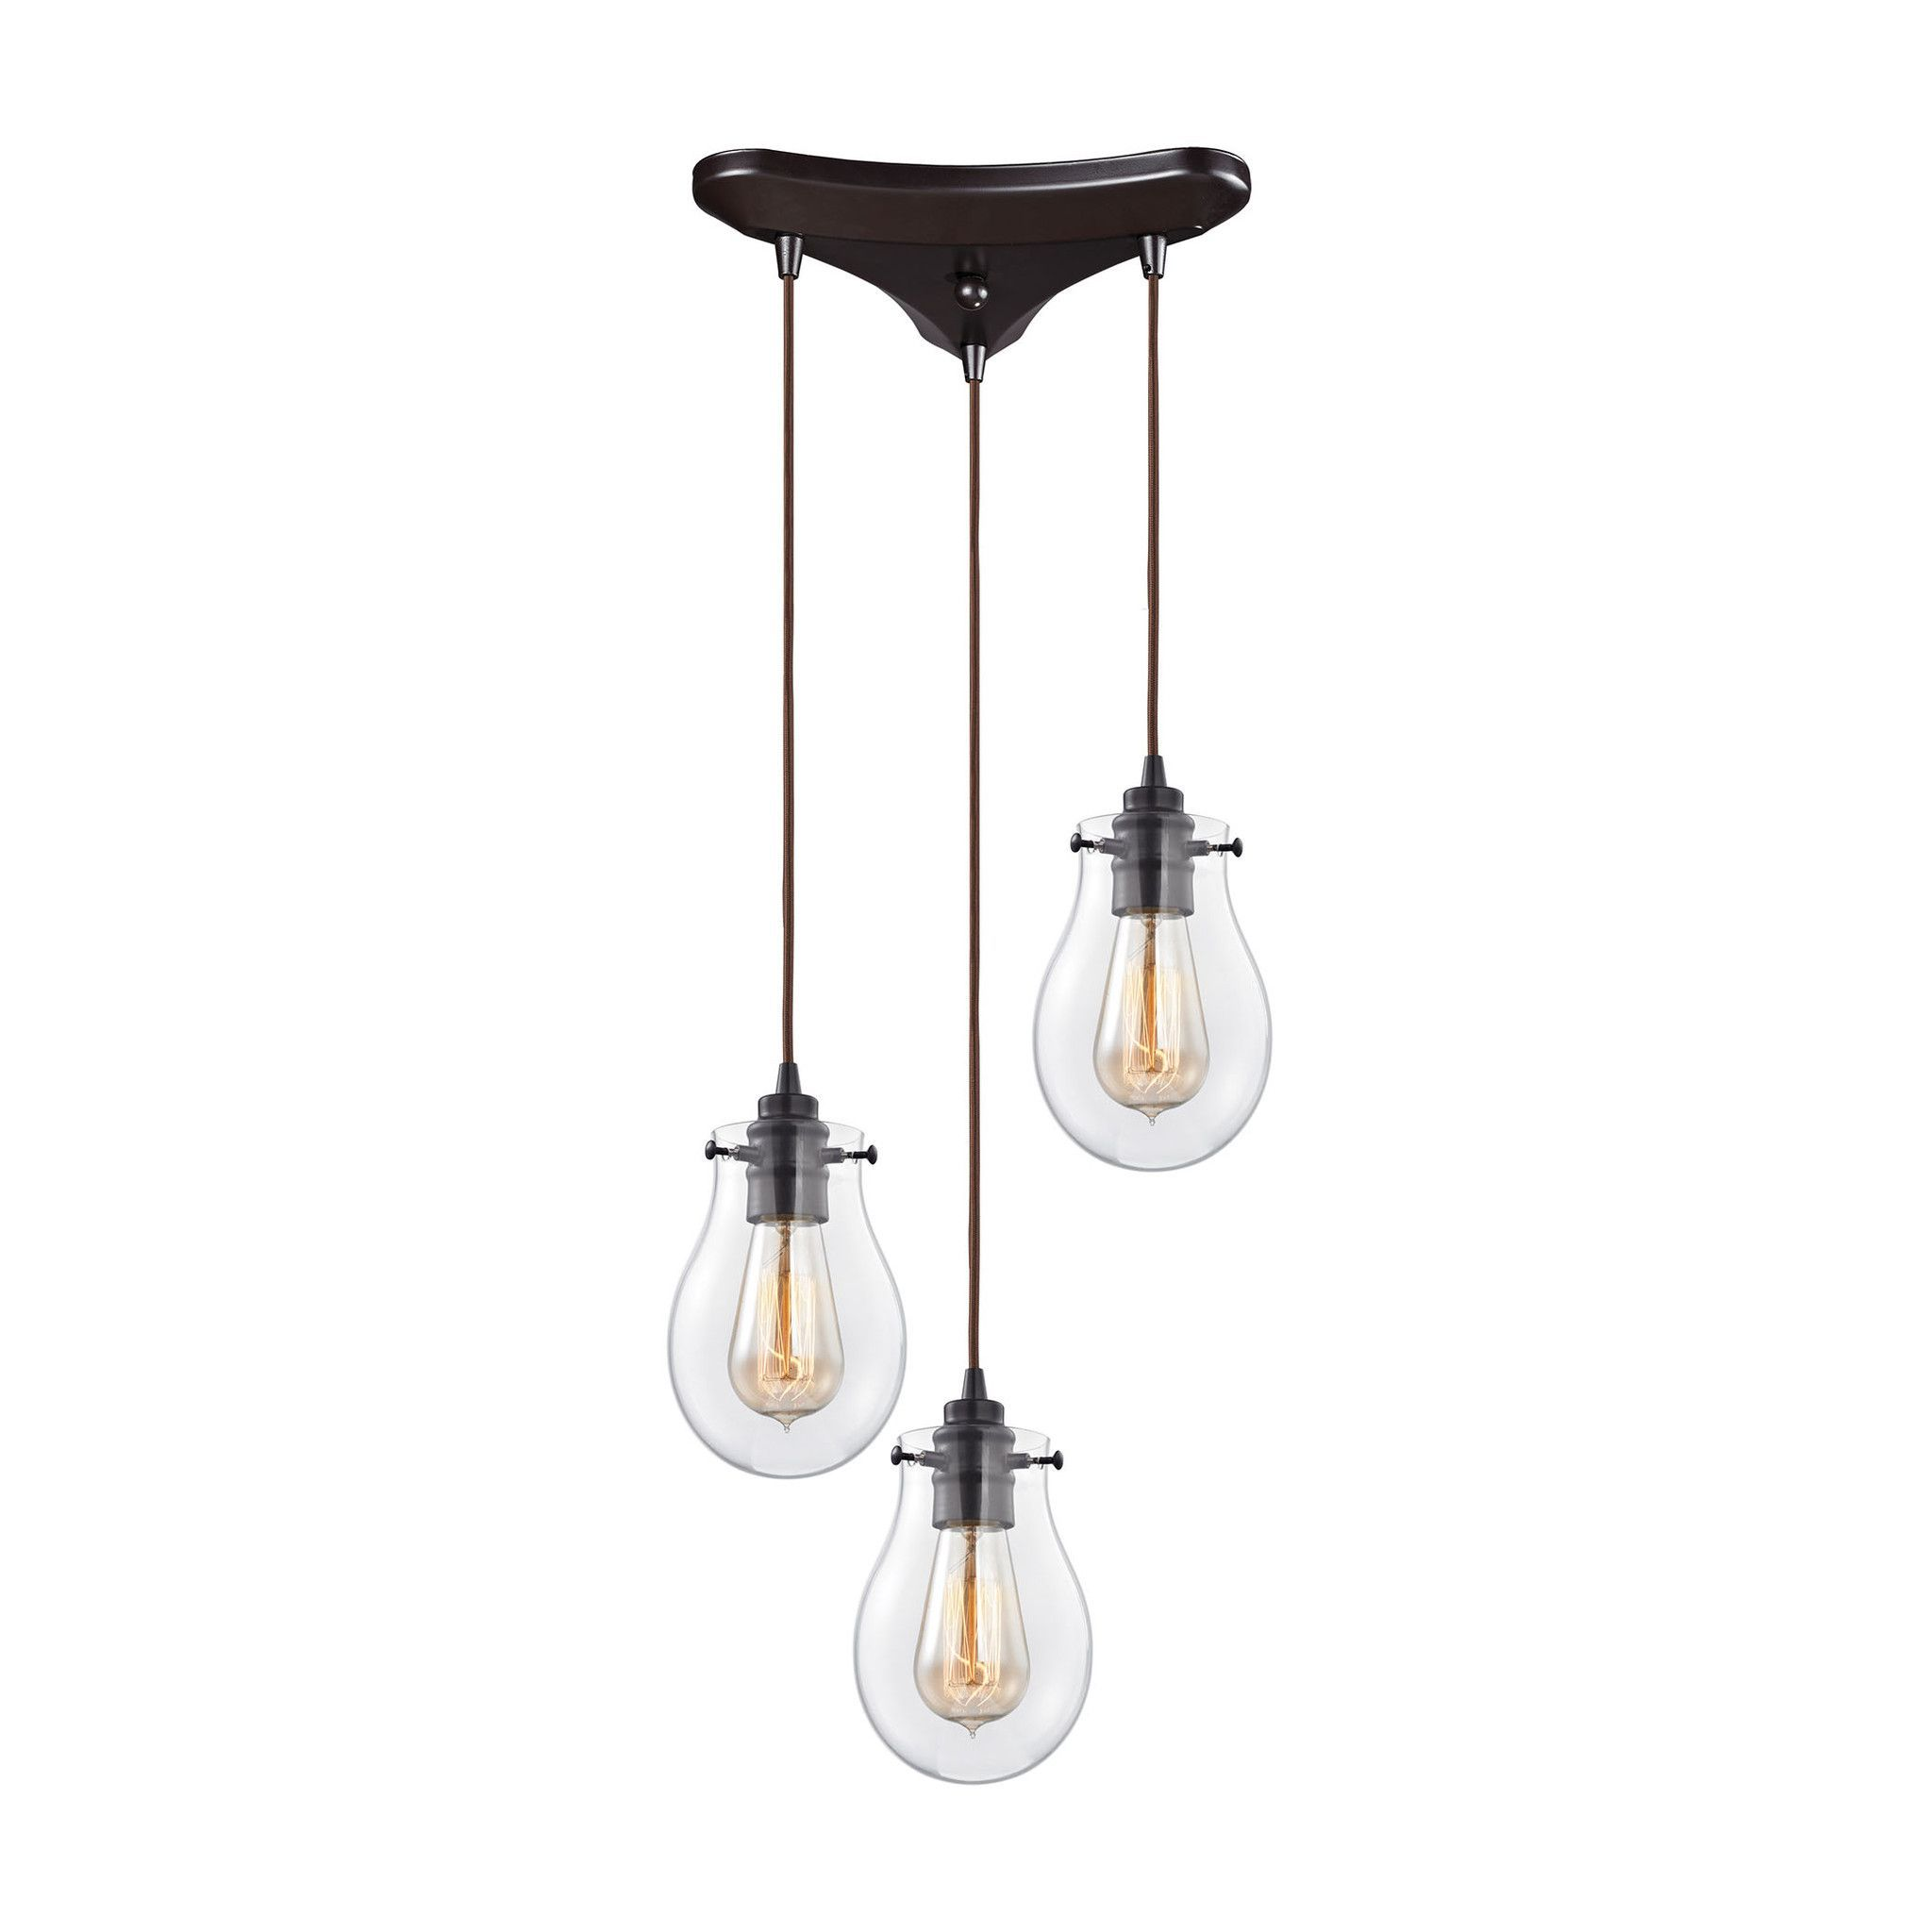 ELK Lighting 31934/3 Jaelyn Collection Oil Rubbed Bronze Finish